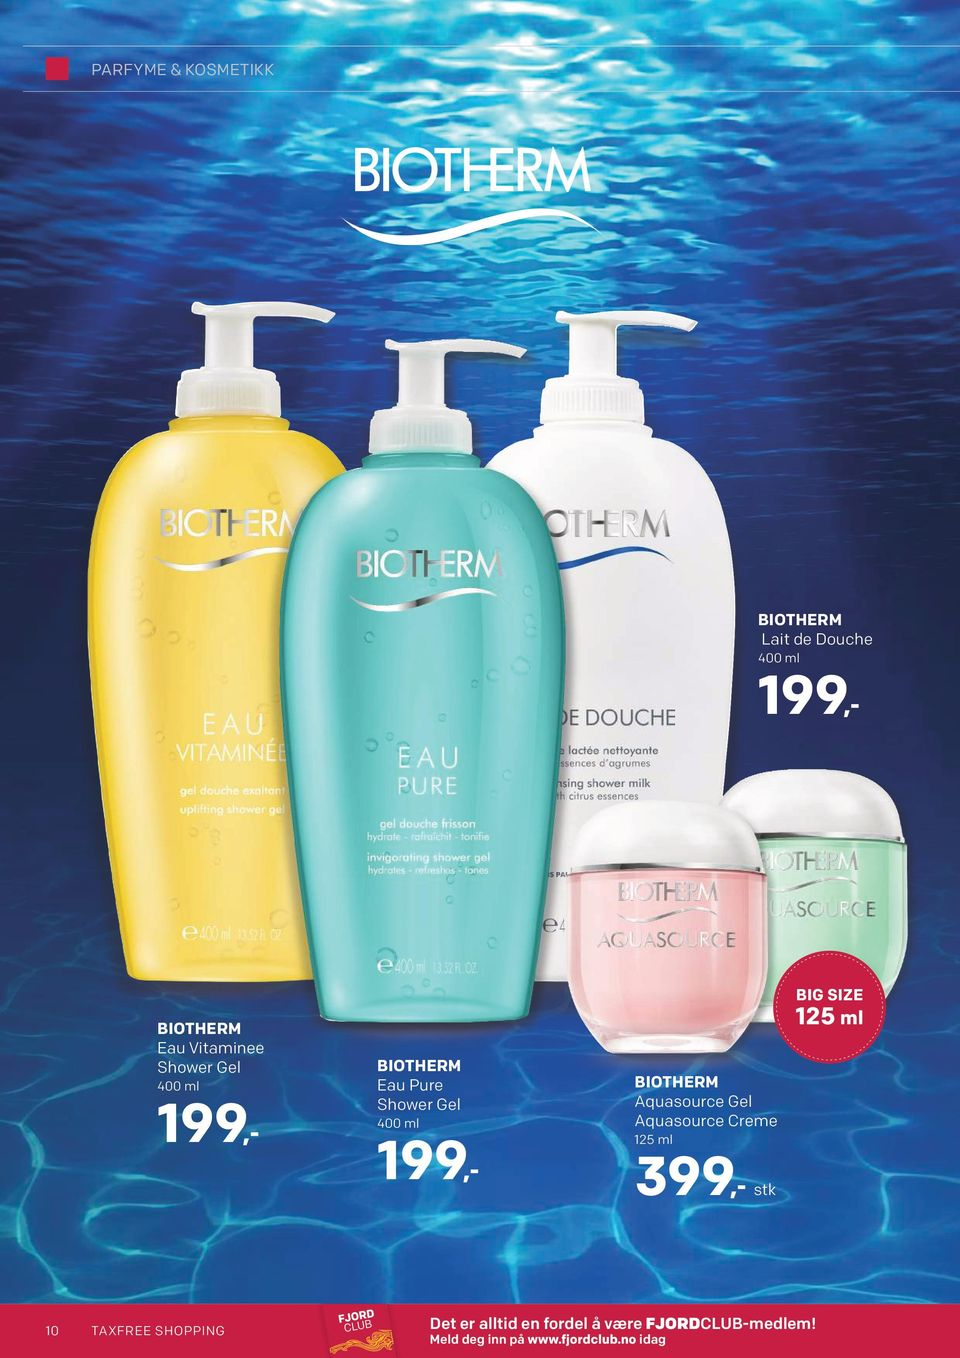 Aquasource Gel Aquasource Creme 125 ml 399,- stk BIG SIZE 125 ml 10 TAXFREE